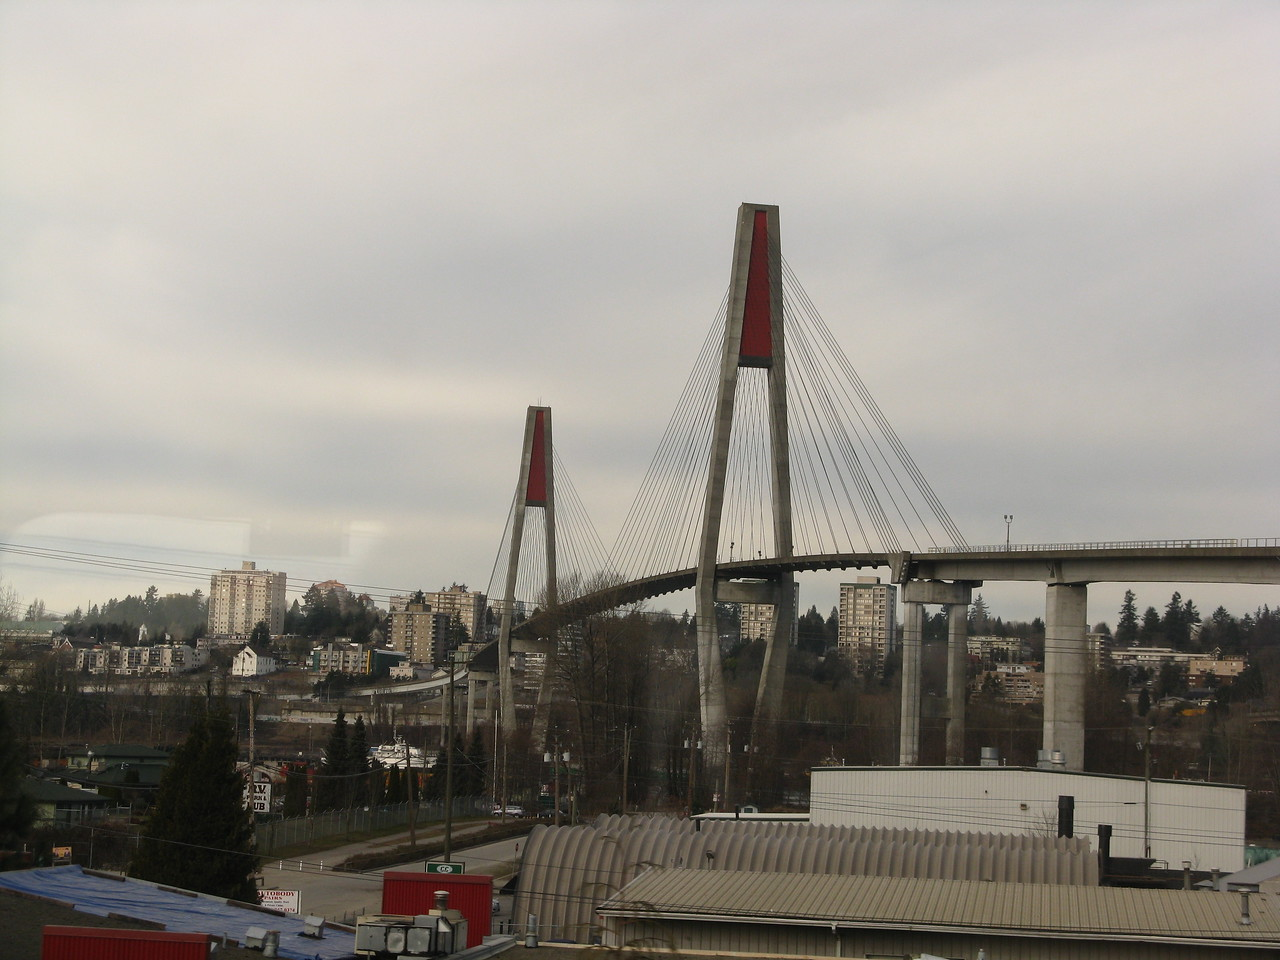 The Skytrain Bridge across the Fraser River.  The Skytrain is the name for Vancouver's light rail transit system.